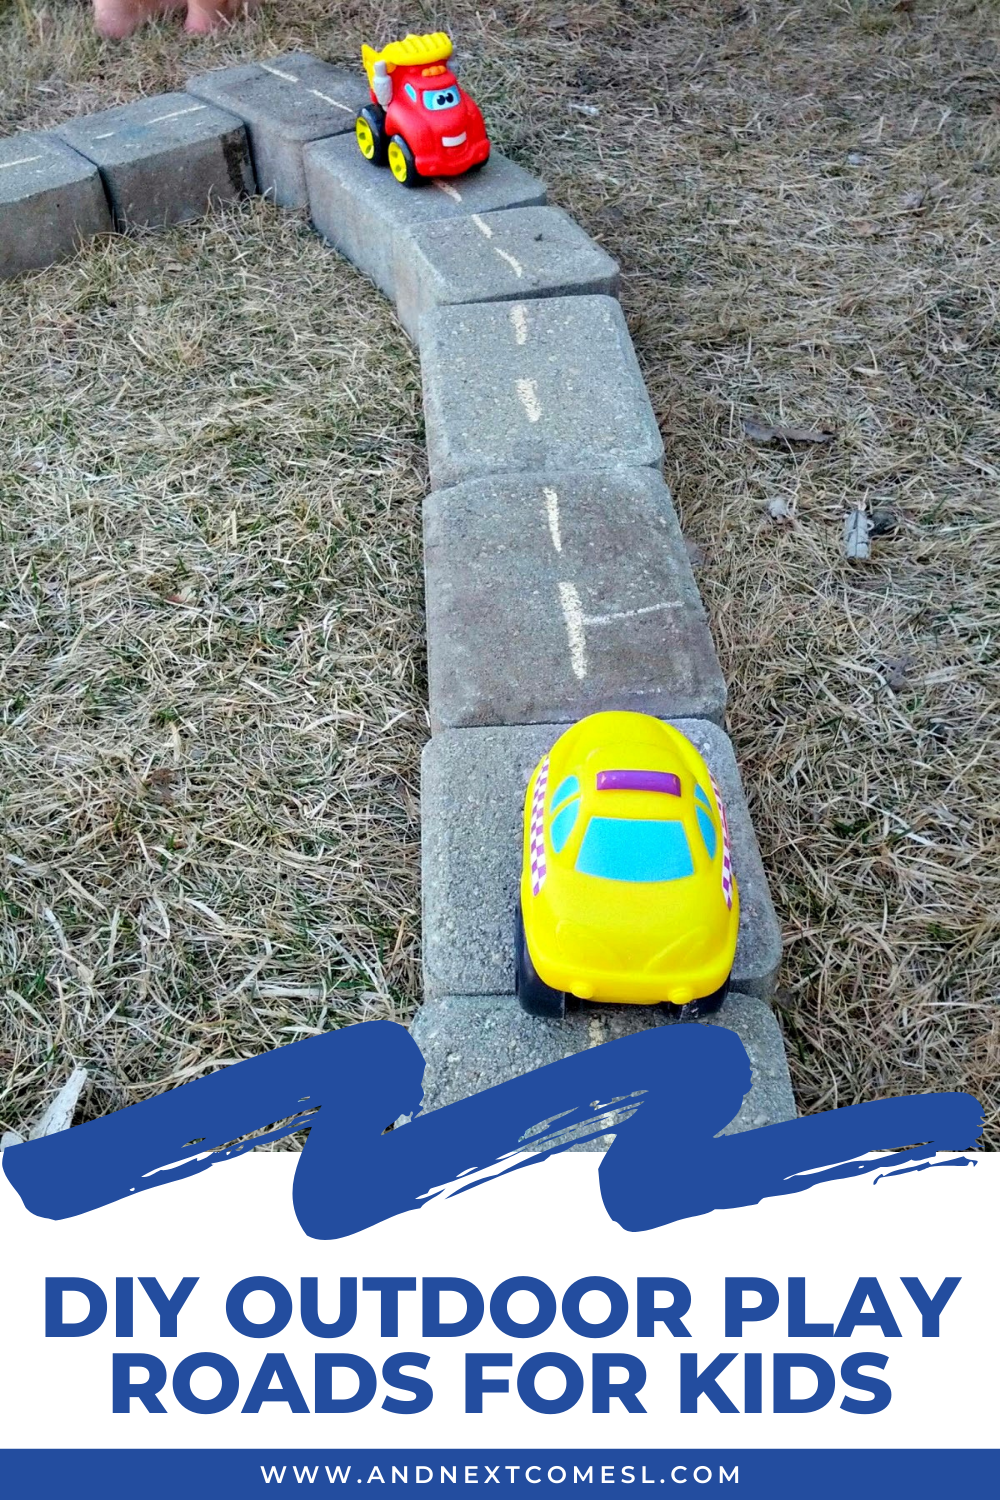 The easiest DIY outdoor play roads for kids ever - great activity for toddlers and preschoolers to play with in the backyard!